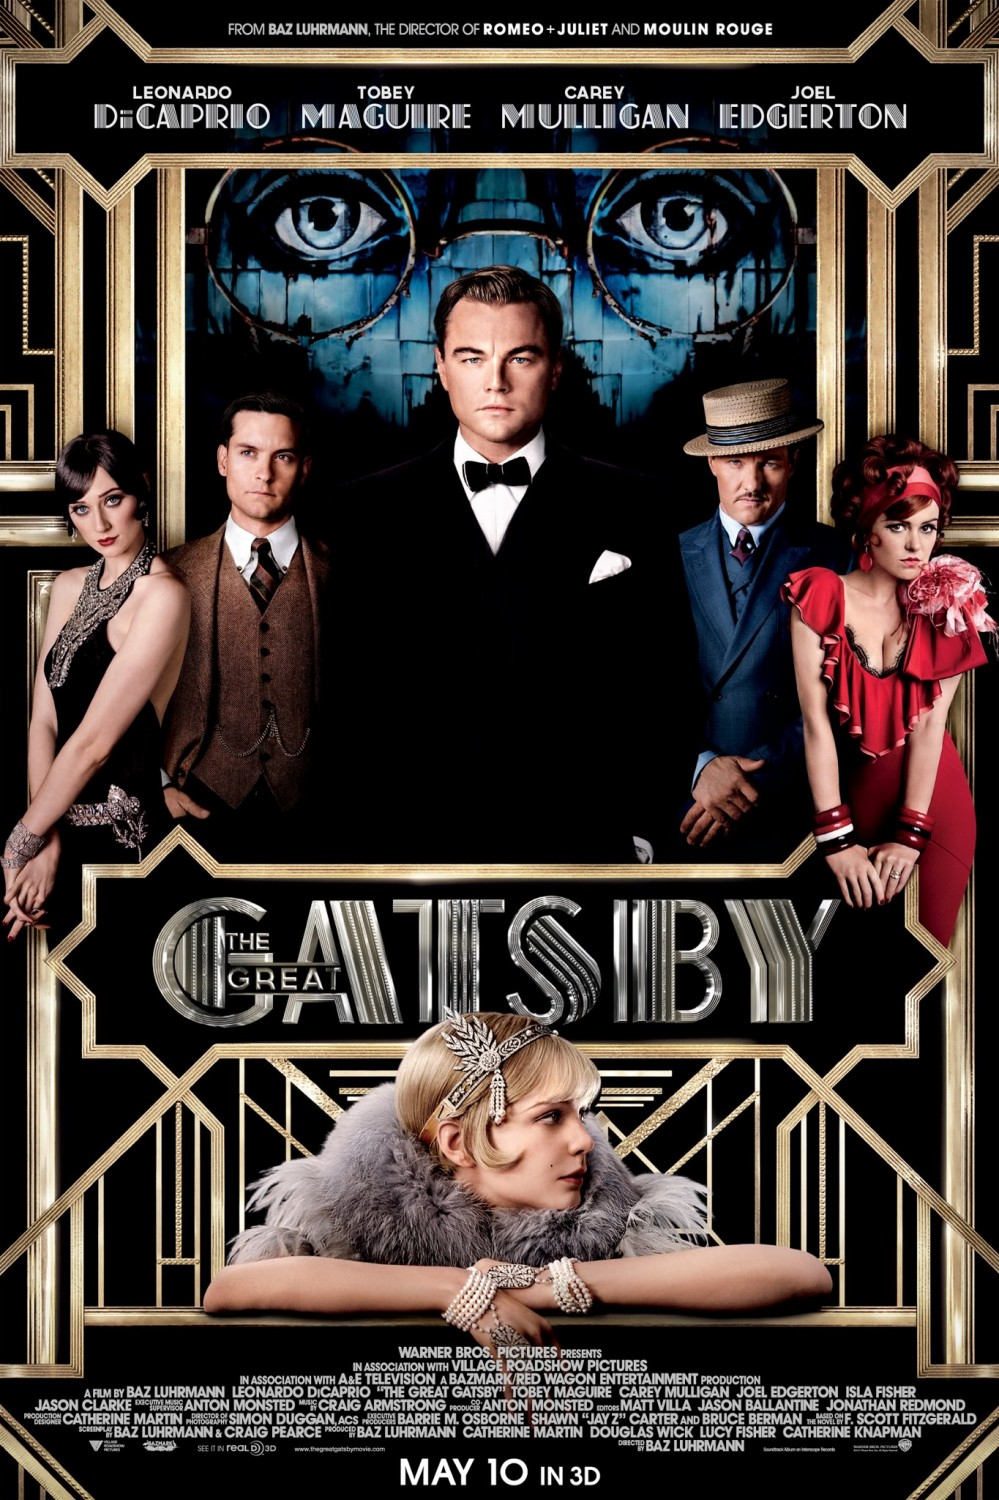 GREAT GATSBY PROMO